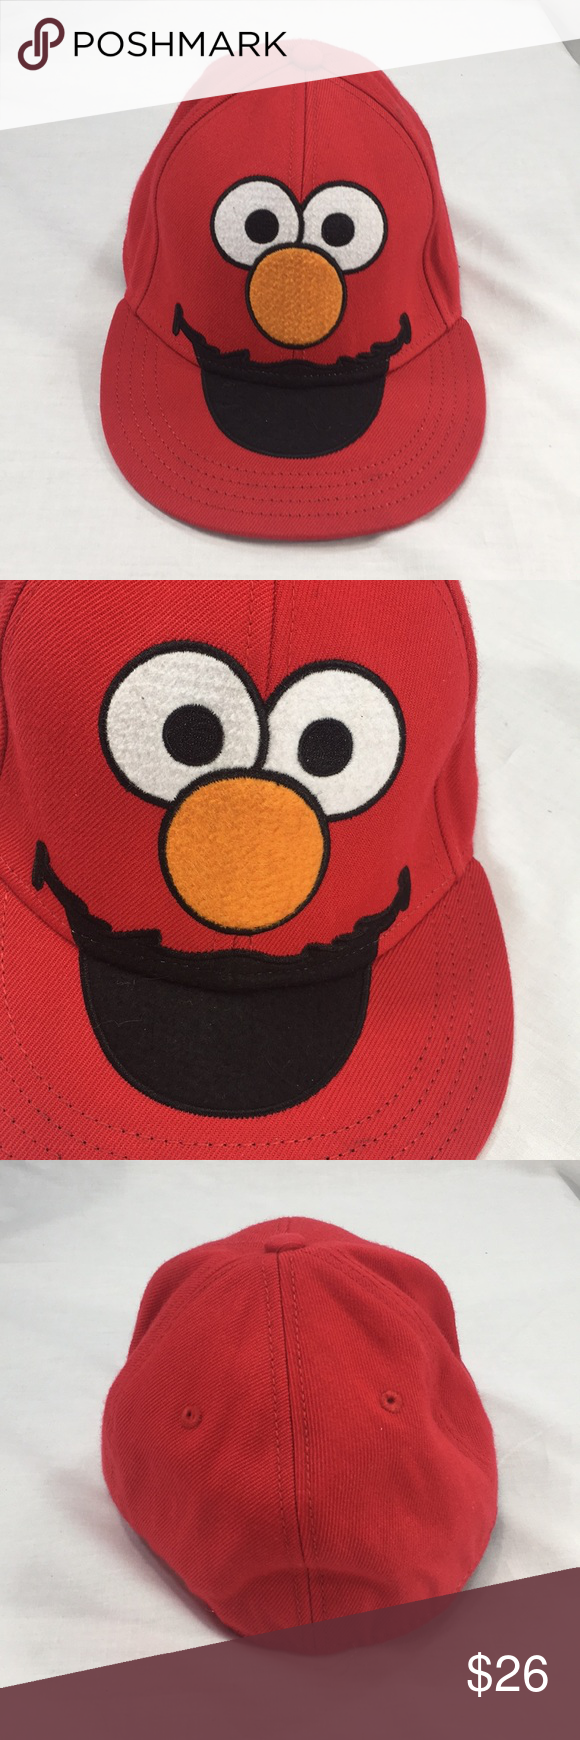 Sesame Street Elmo Red Fitted Hat Size 7 1 4 Fitted Hats Street Accessories Sesame Street